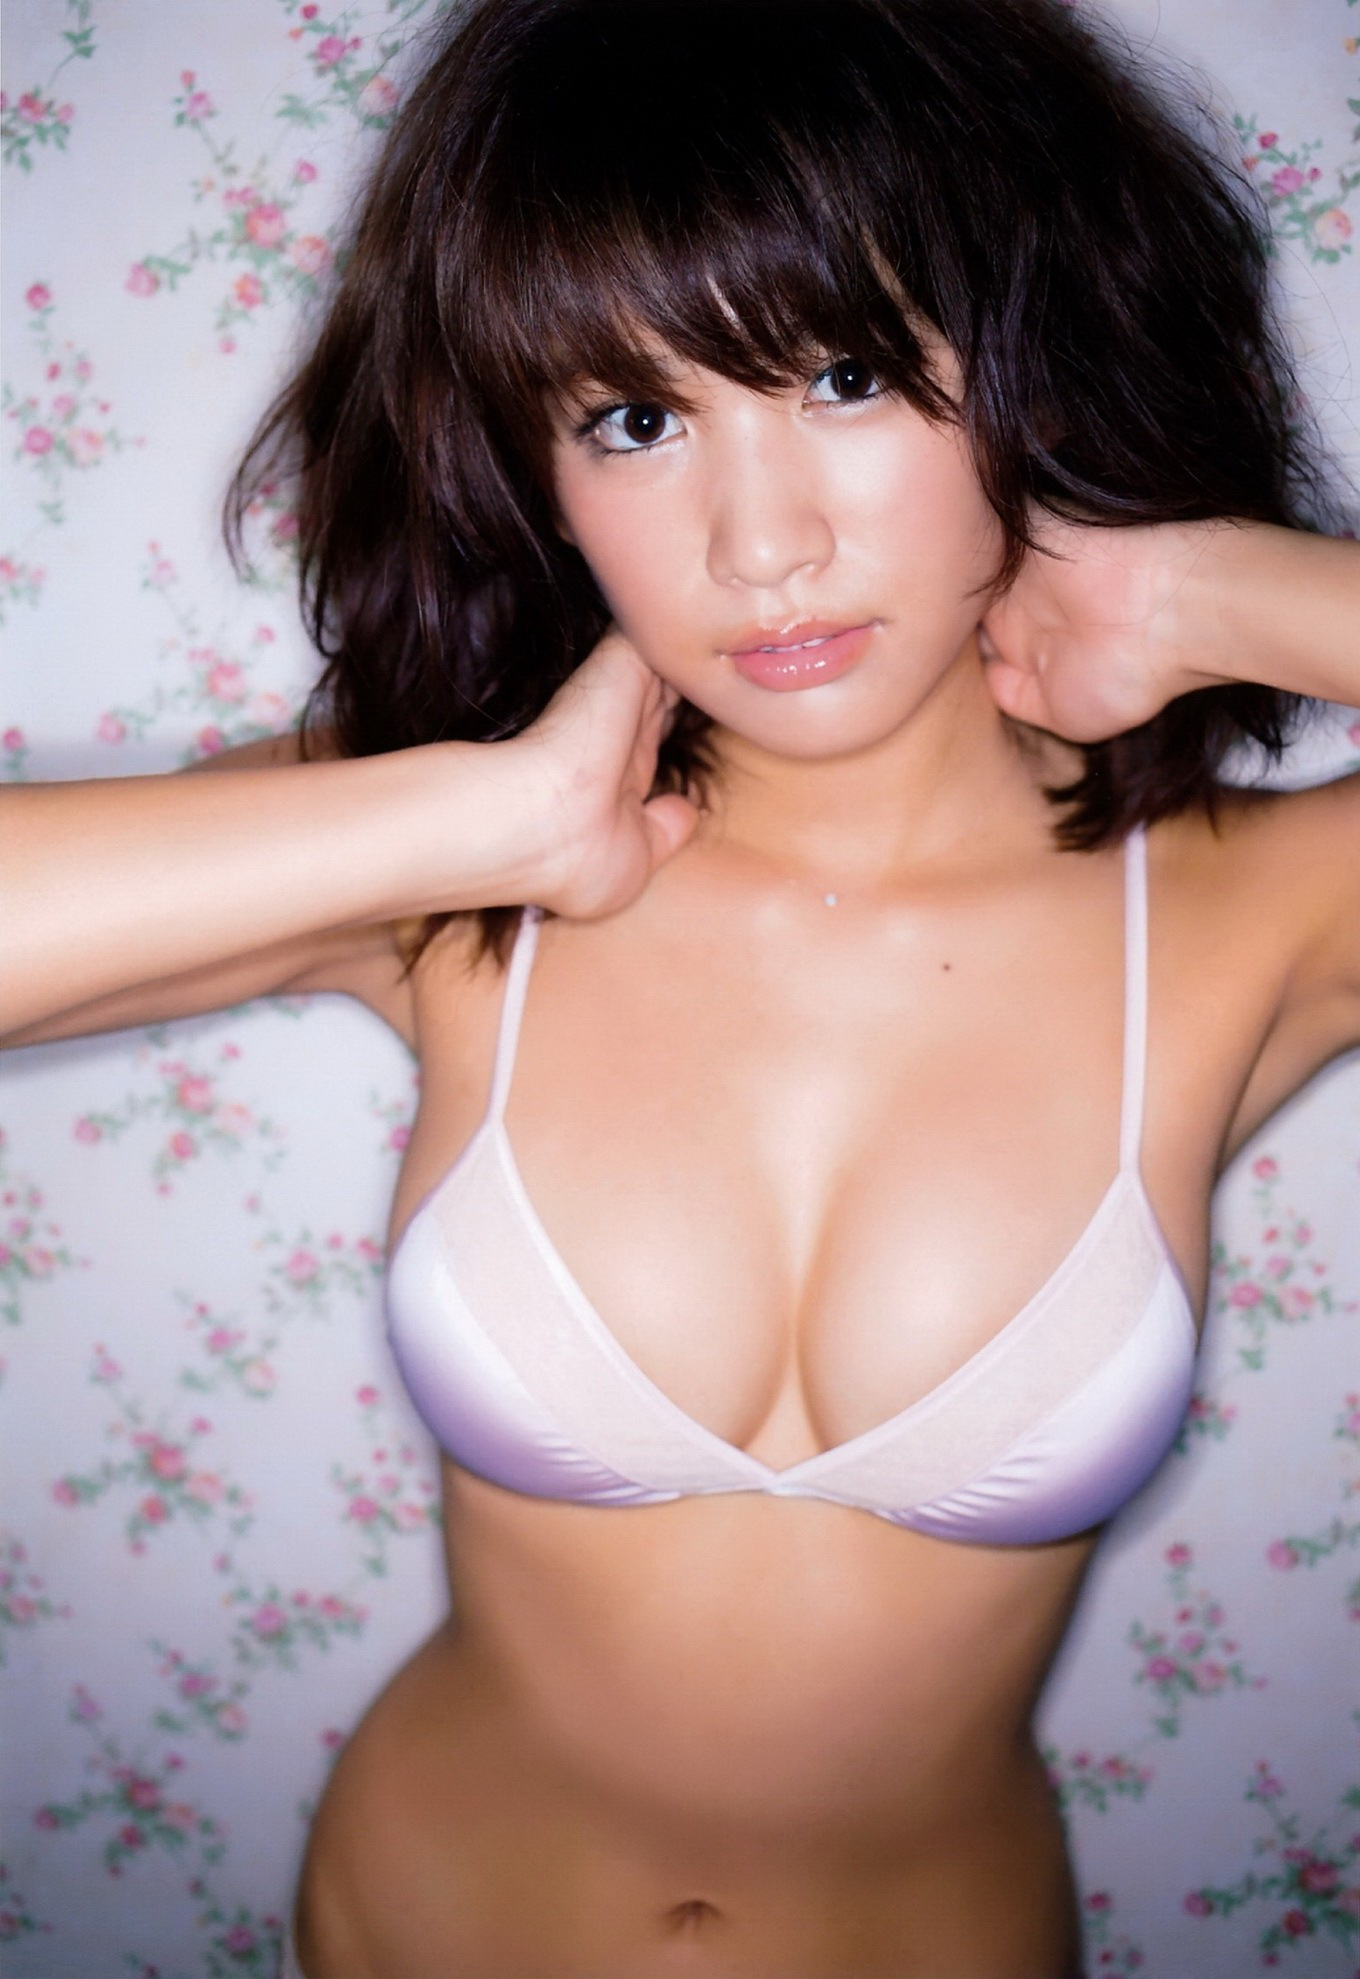 Ikumi Hisamatsu shows off her hot body in tiny lingerie at ...